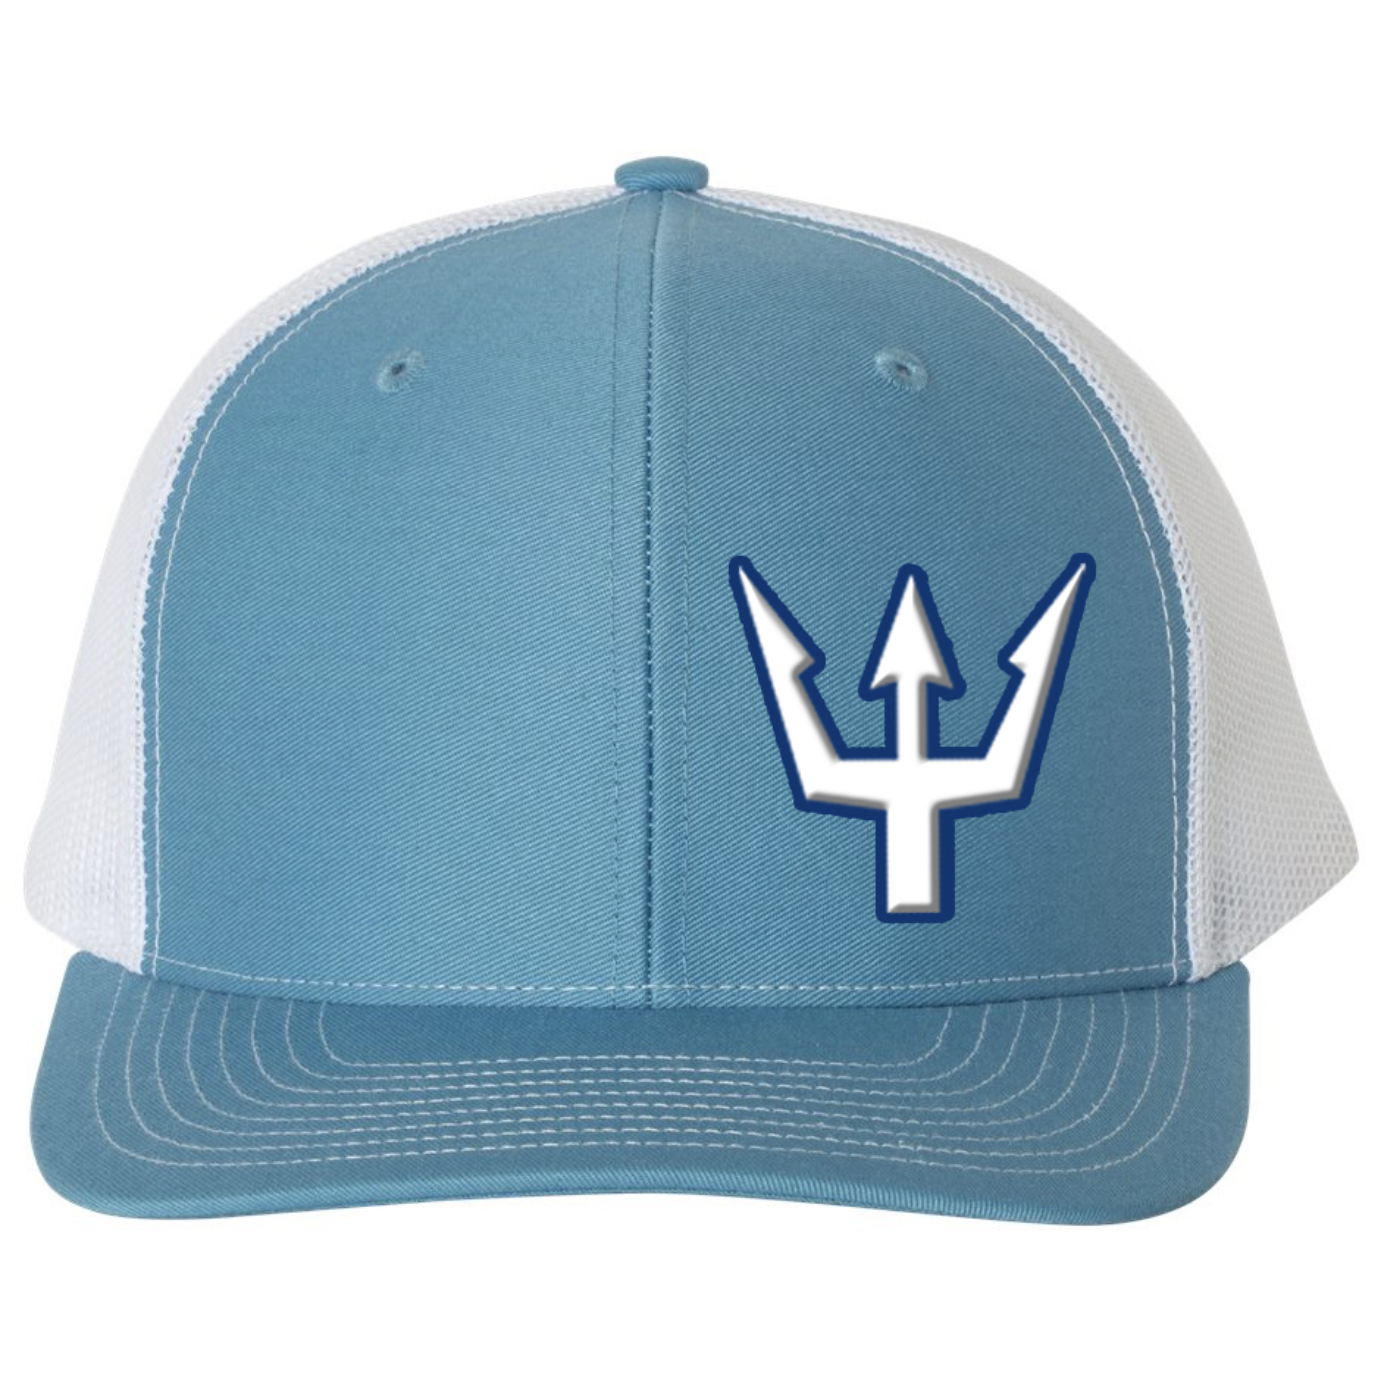 Waterman's Wear Trident Logo Dual Color Adjustable Trucker Hat - Light Blue/White